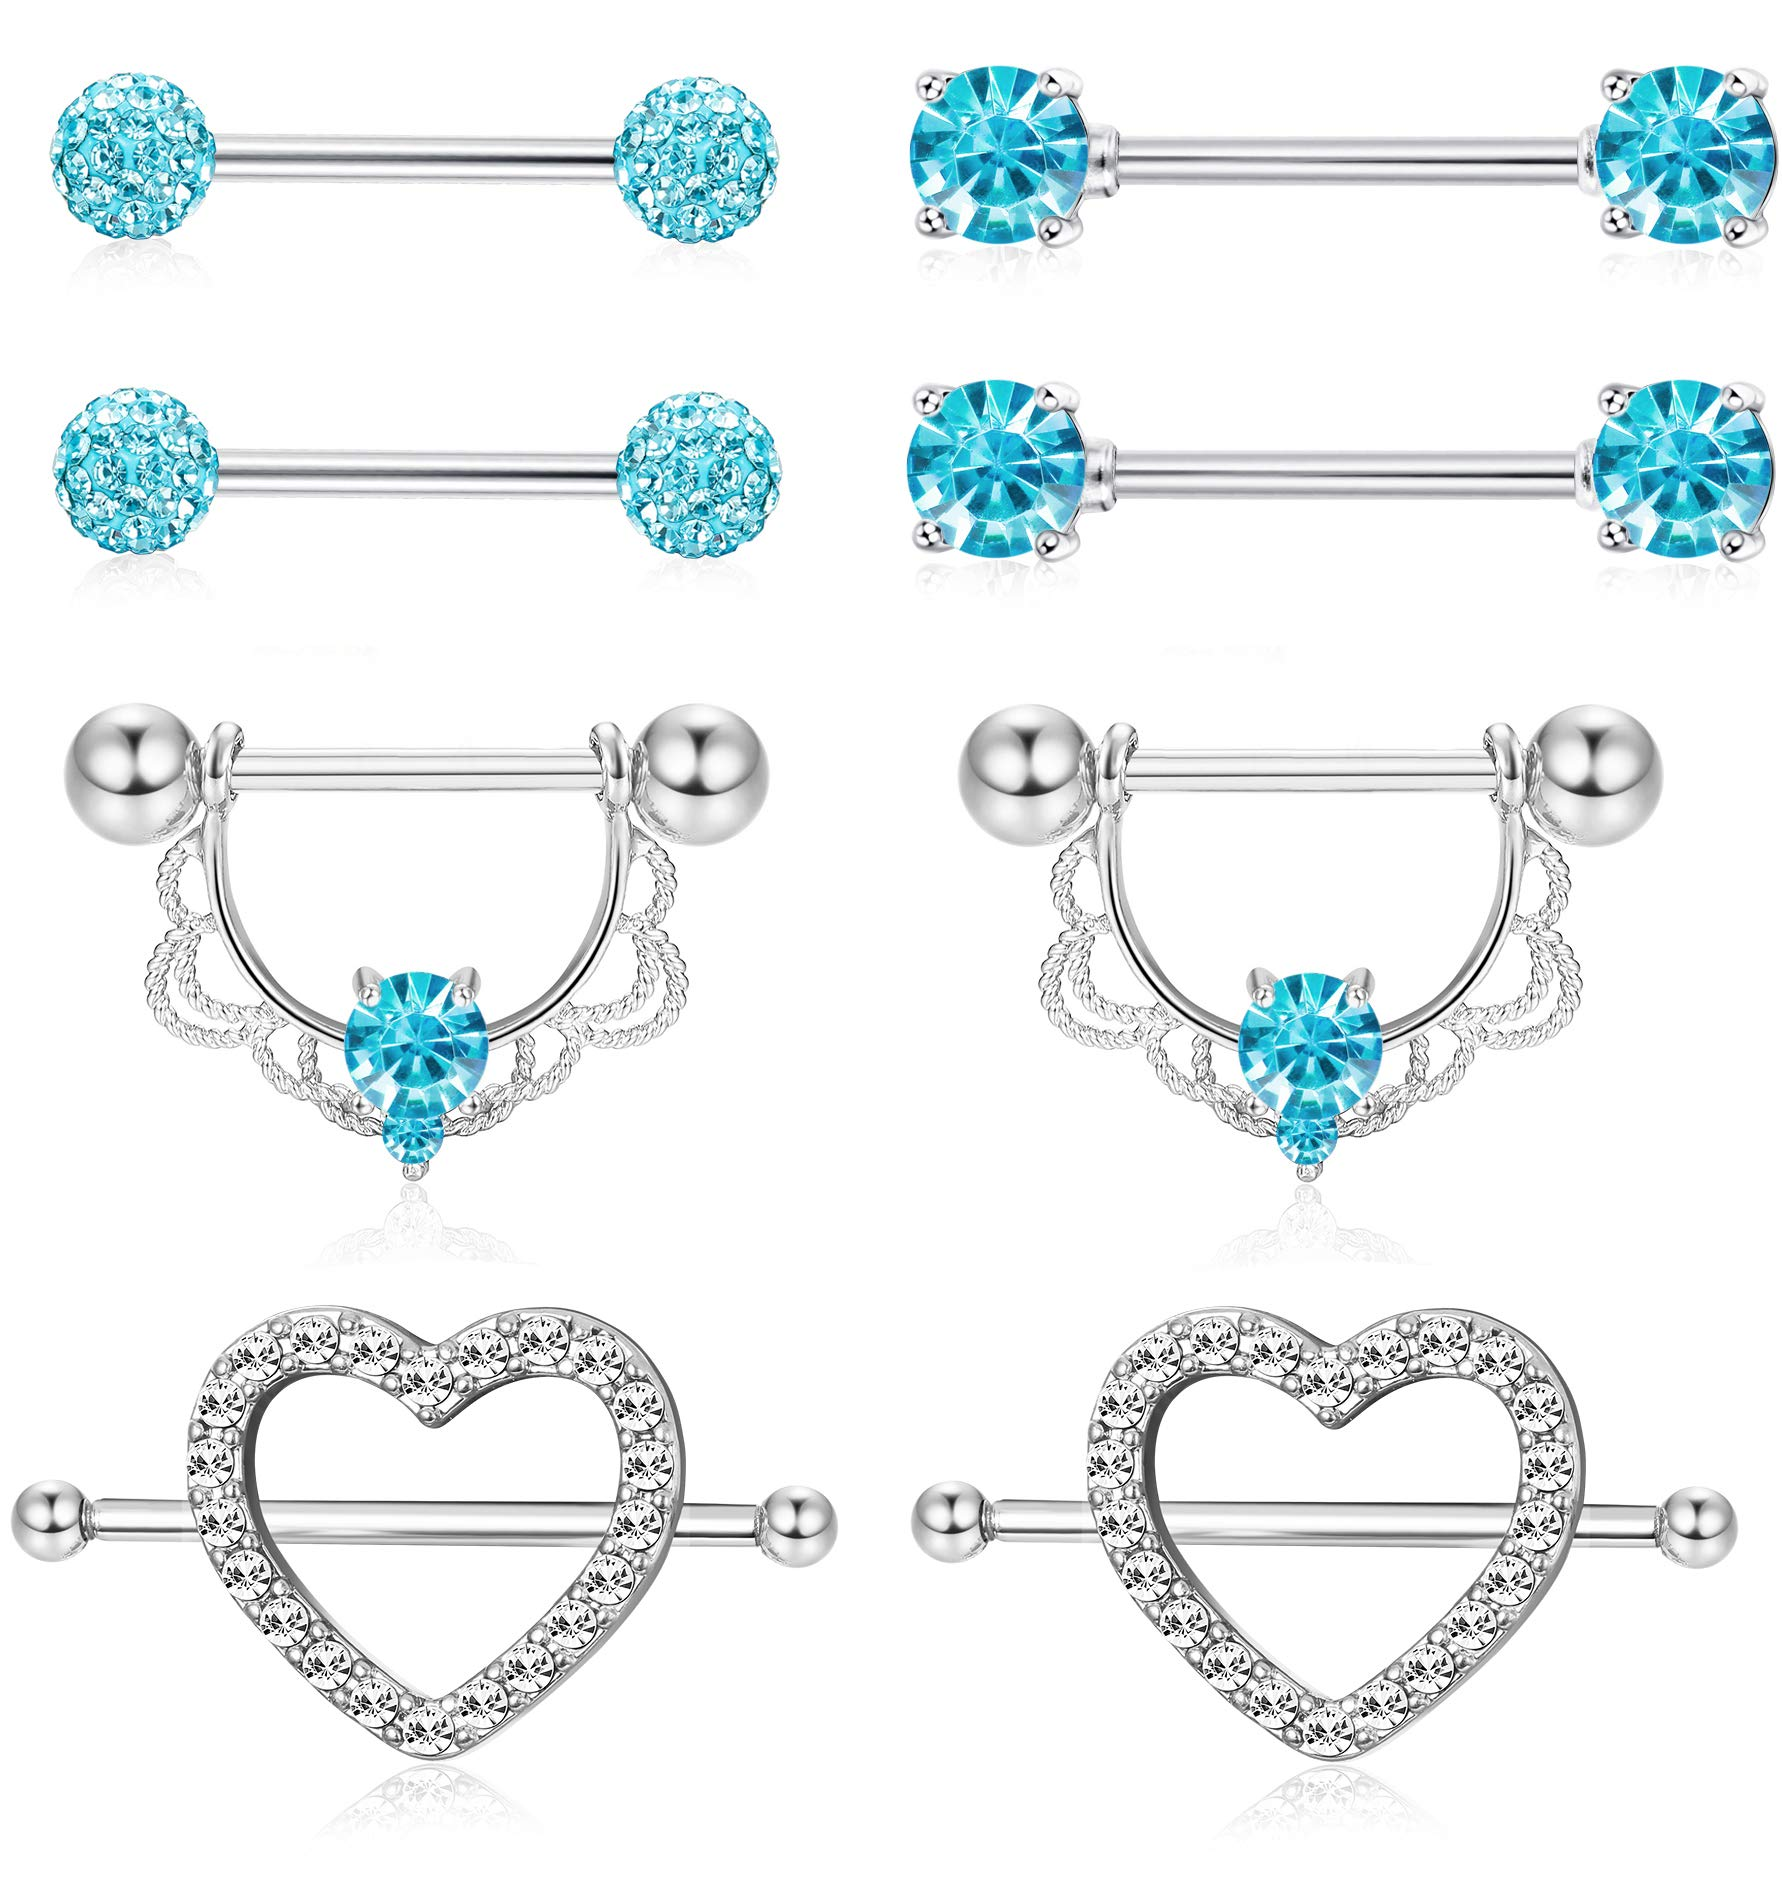 ORAZIO 4 Pairs 14G Stainless Steel Nipplerings Nipple Tongue Rings CZ Opal Barbell Body Piercing Jewelry Blue by ORAZIO